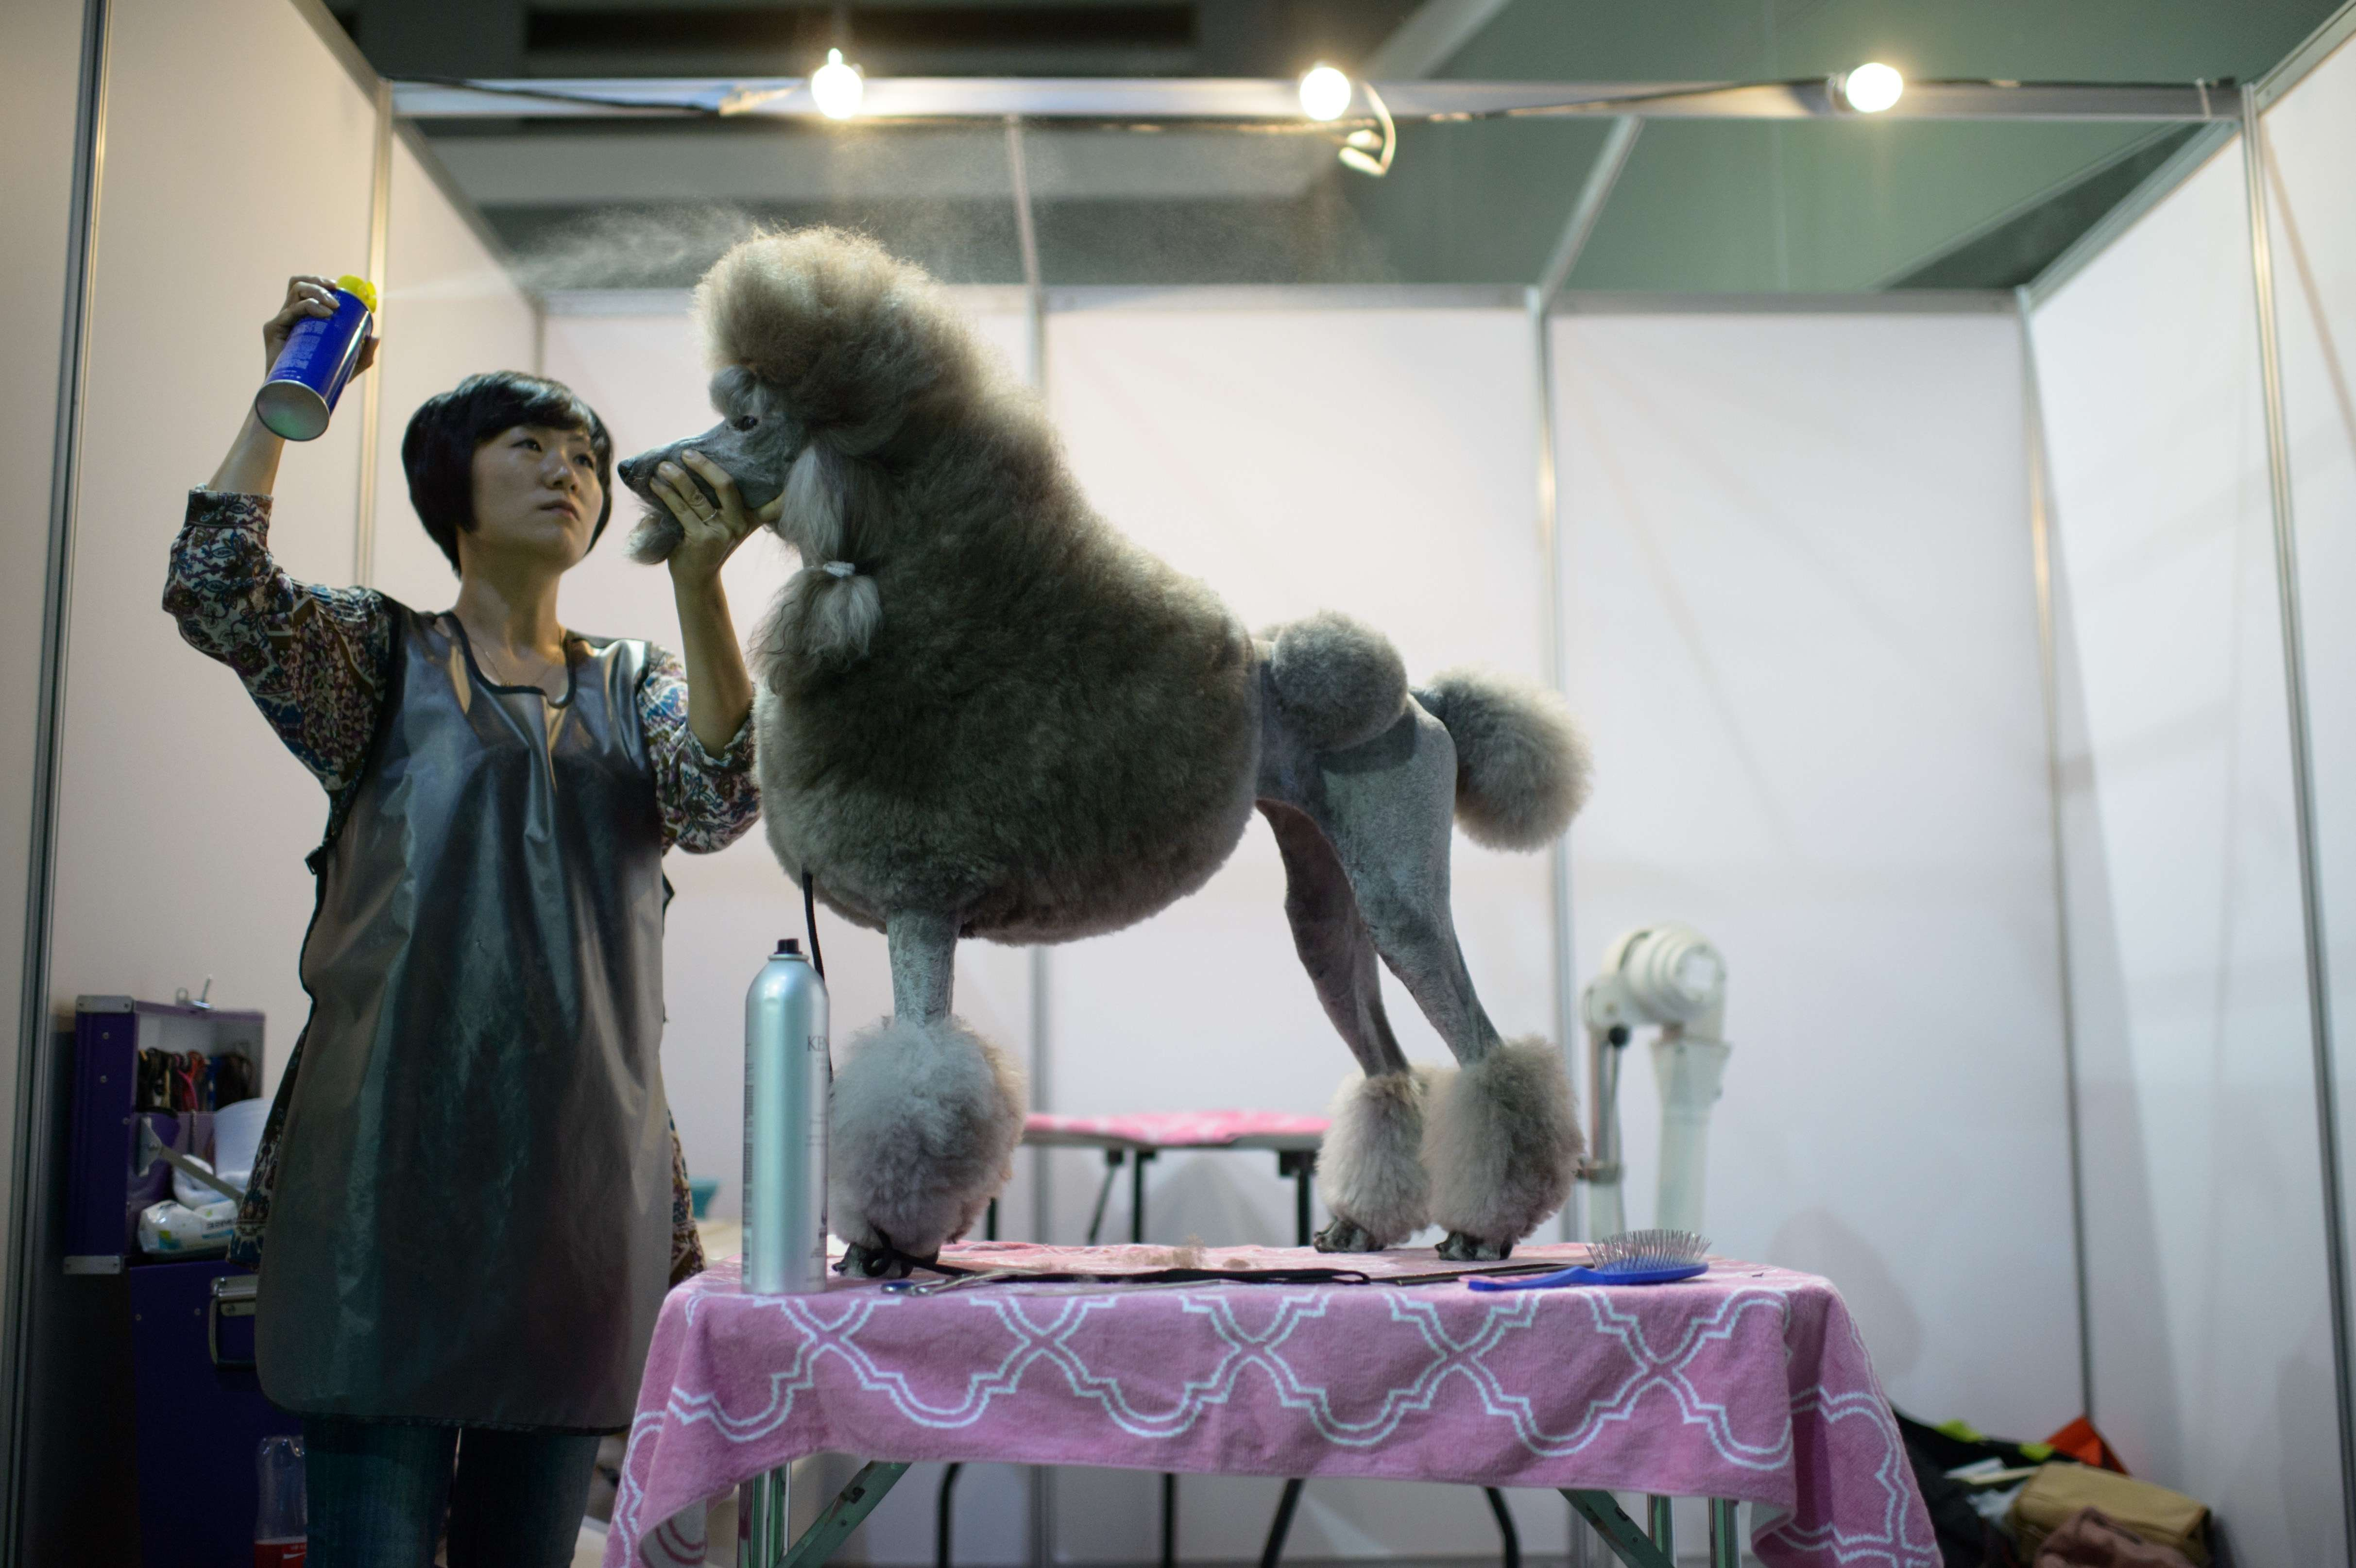 A dog owner sprays hairspray on her poodle backstage at a dog show in Seoul on Aug. 30, 2014.